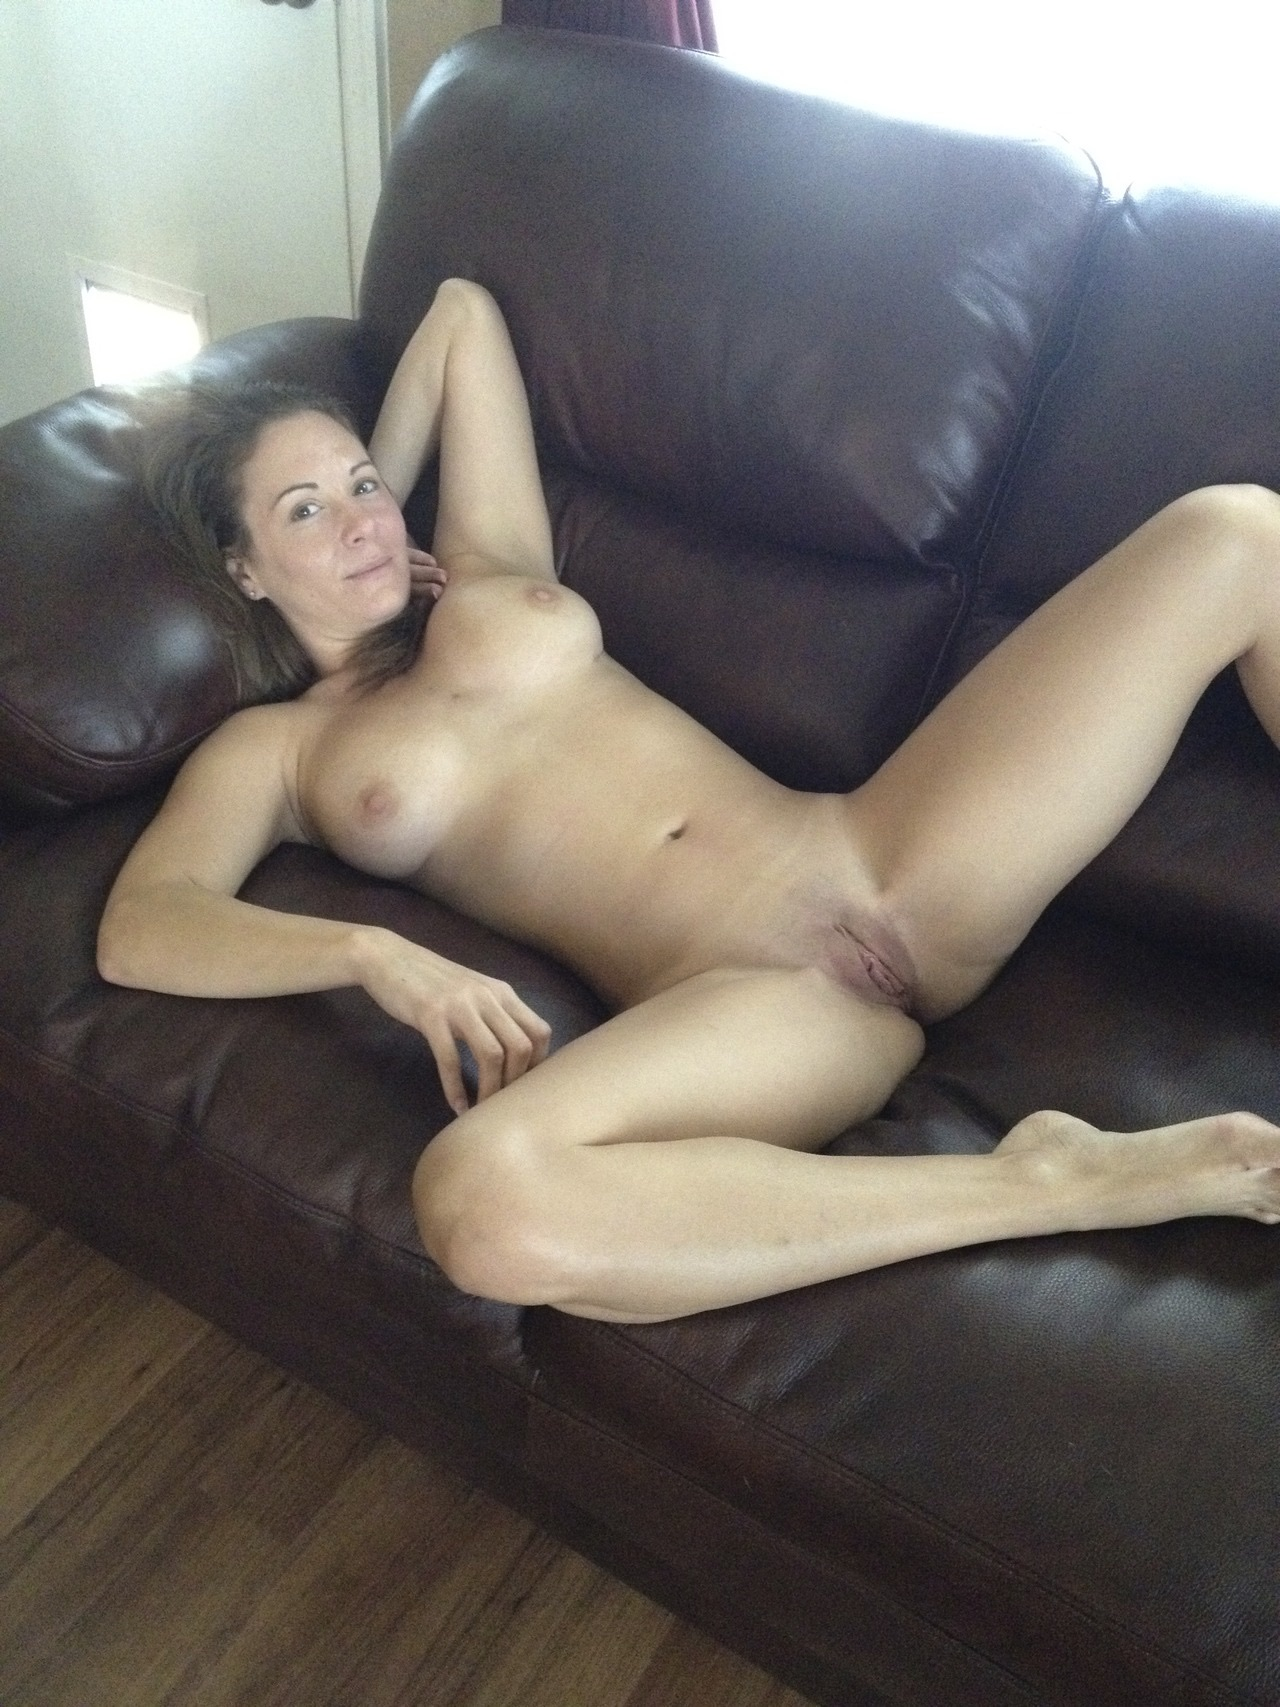 image dragon breath american dragon jake long #breast #brunette #emmasweet #naked #pussy #shaved #spread